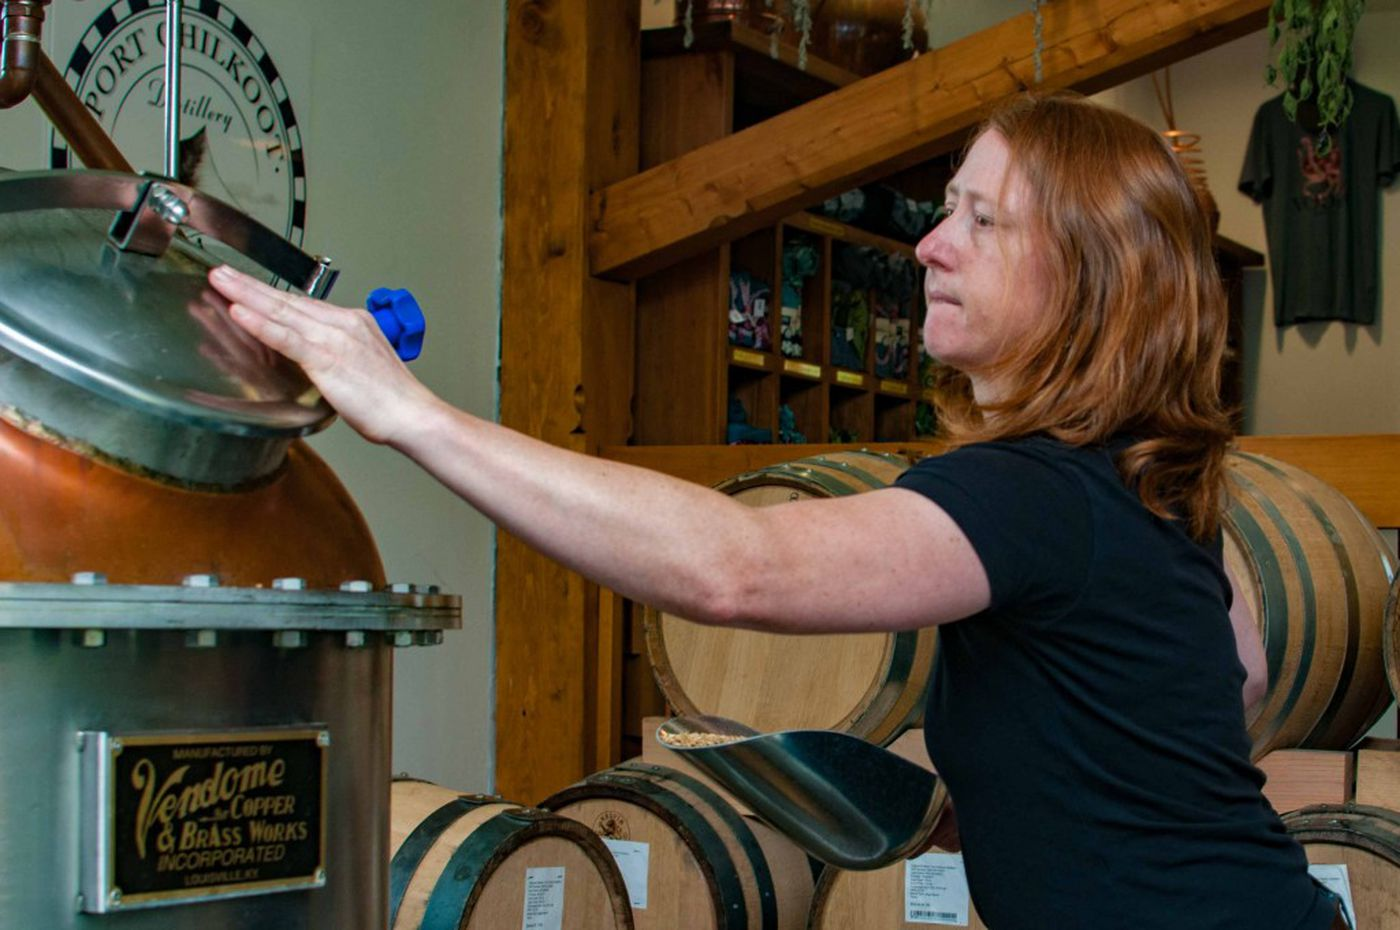 Heather Shade at work, Port Chilkoot Distillery, Haines, Alaska. (Photo by Andy Hedden)